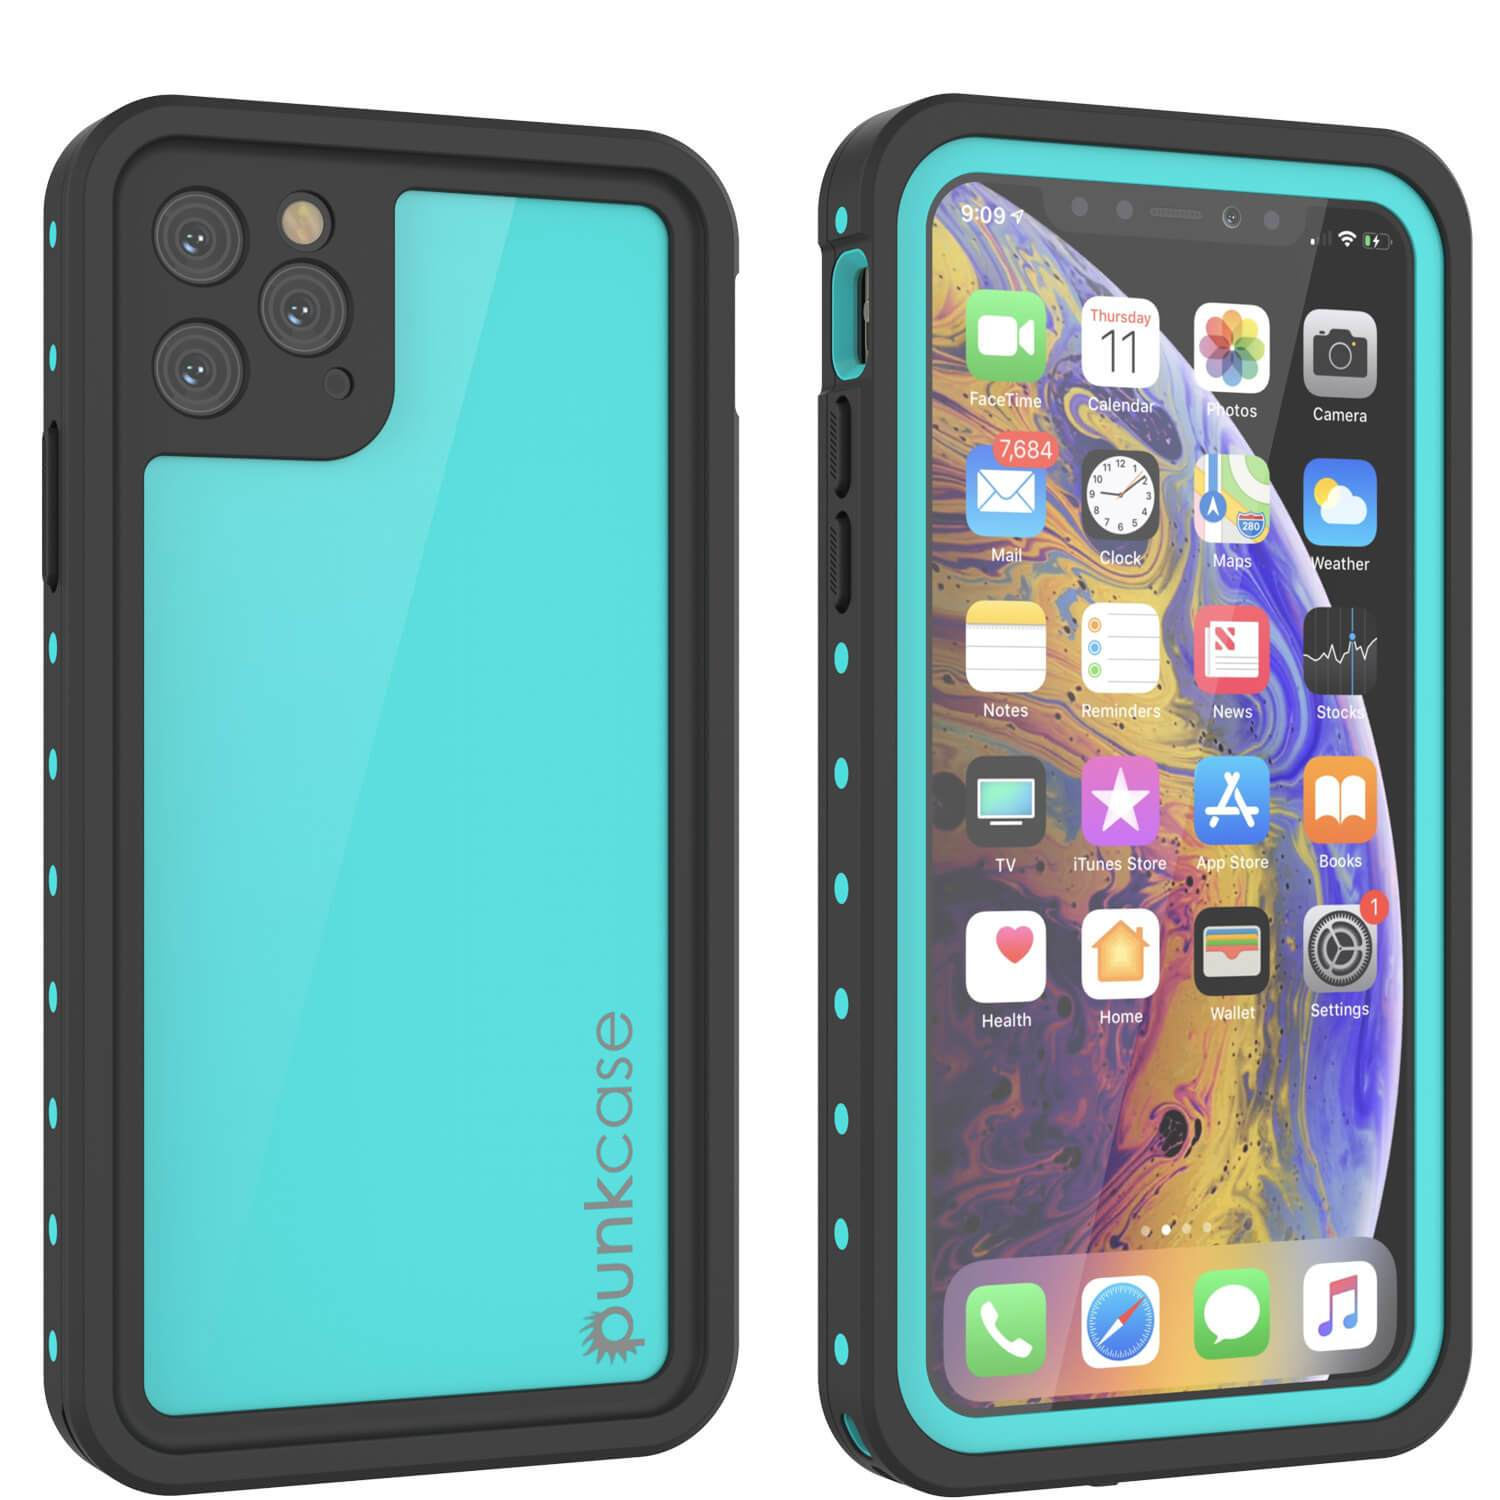 iPhone 11 Pro Waterproof IP68 Case, Punkcase [Teal] [StudStar Series] [Slim Fit]